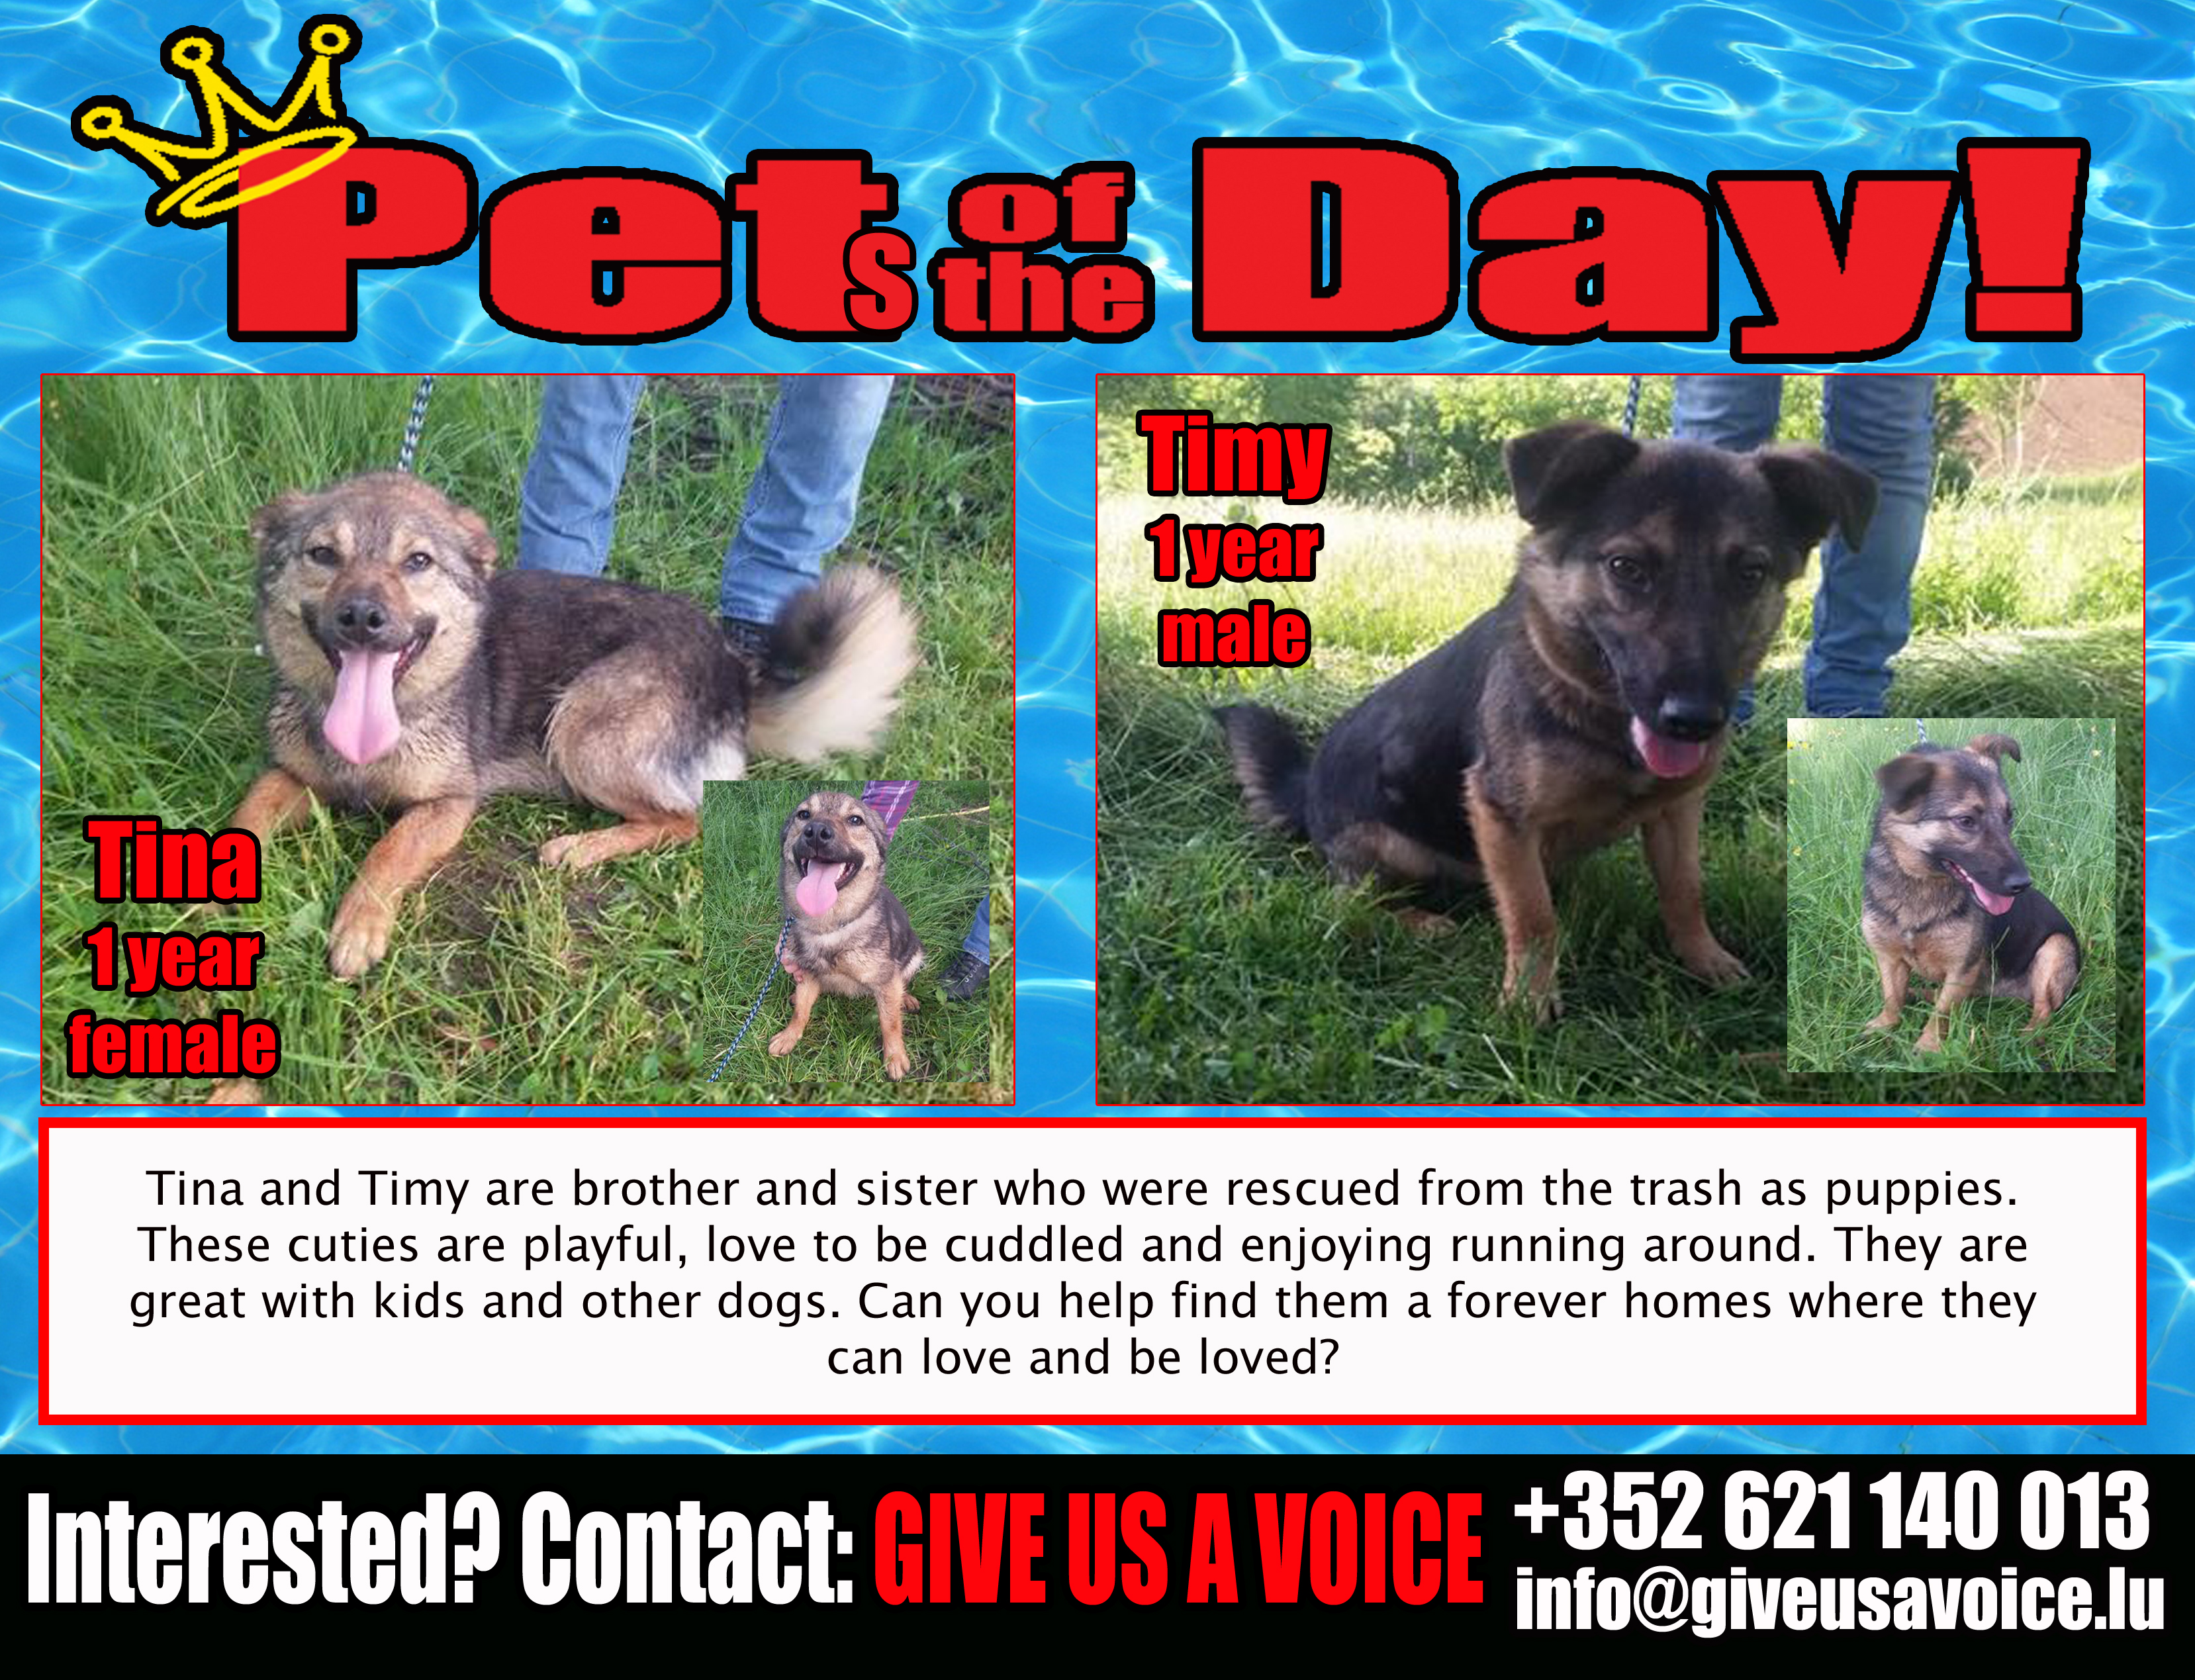 06-11-16 Pet of the Day